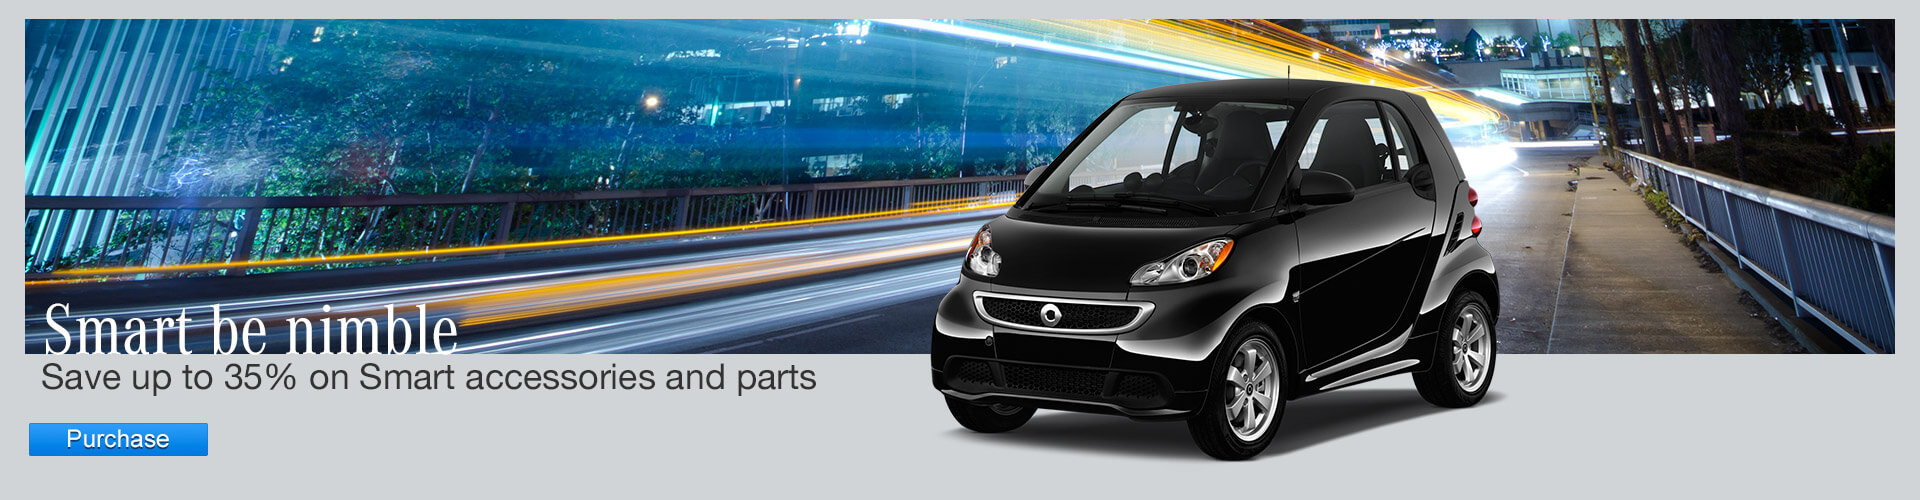 Mb parts usa genuine mercedes benz parts and accessories for Mercedes benz parts and accessories